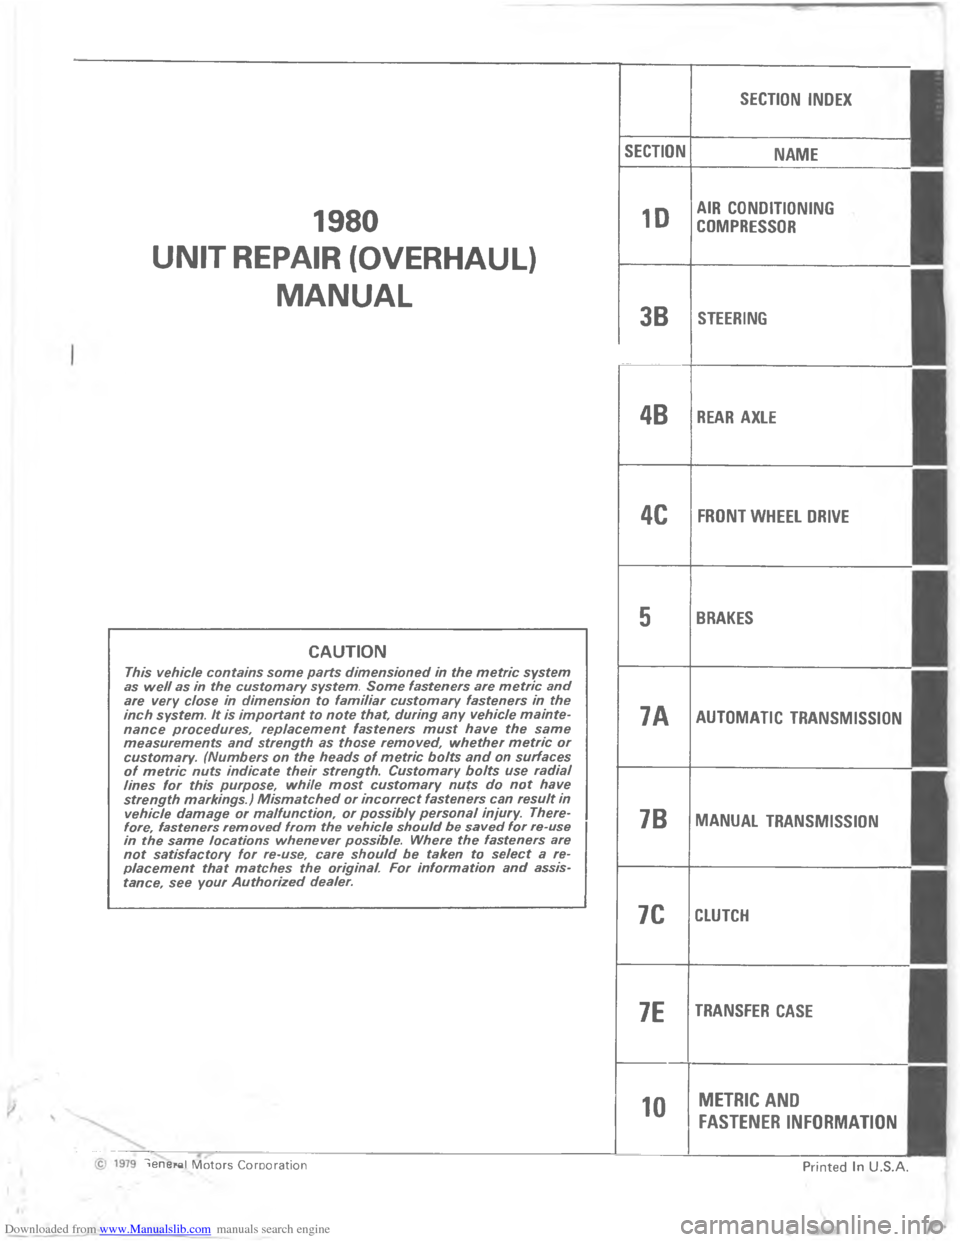 CHEVROLET MALIBU 1980 4.G Workshop Manual, Page 5